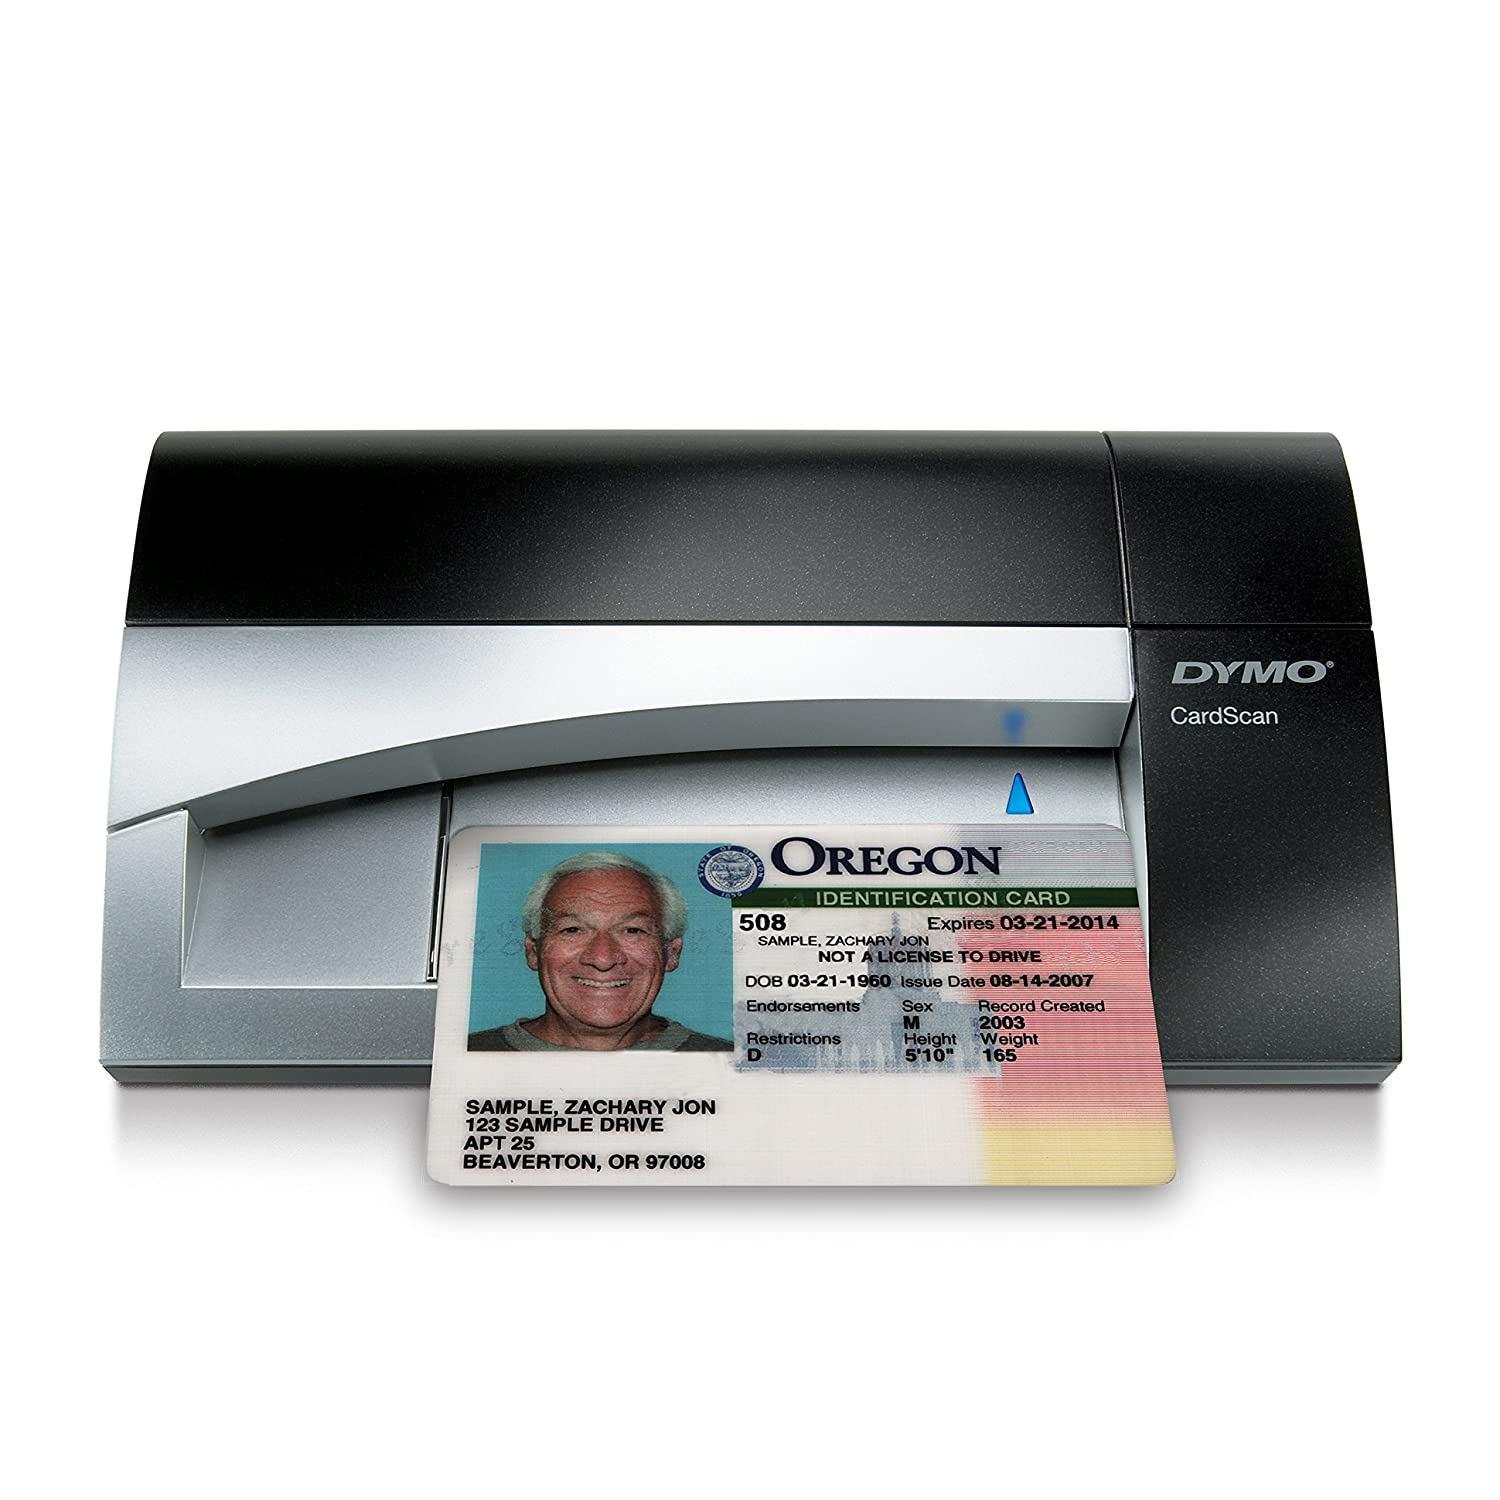 Amazon dymo cardscan v9 executive business card scanner and amazon dymo cardscan v9 executive business card scanner and contact management system for pc or mac 1760686 electronics reheart Image collections